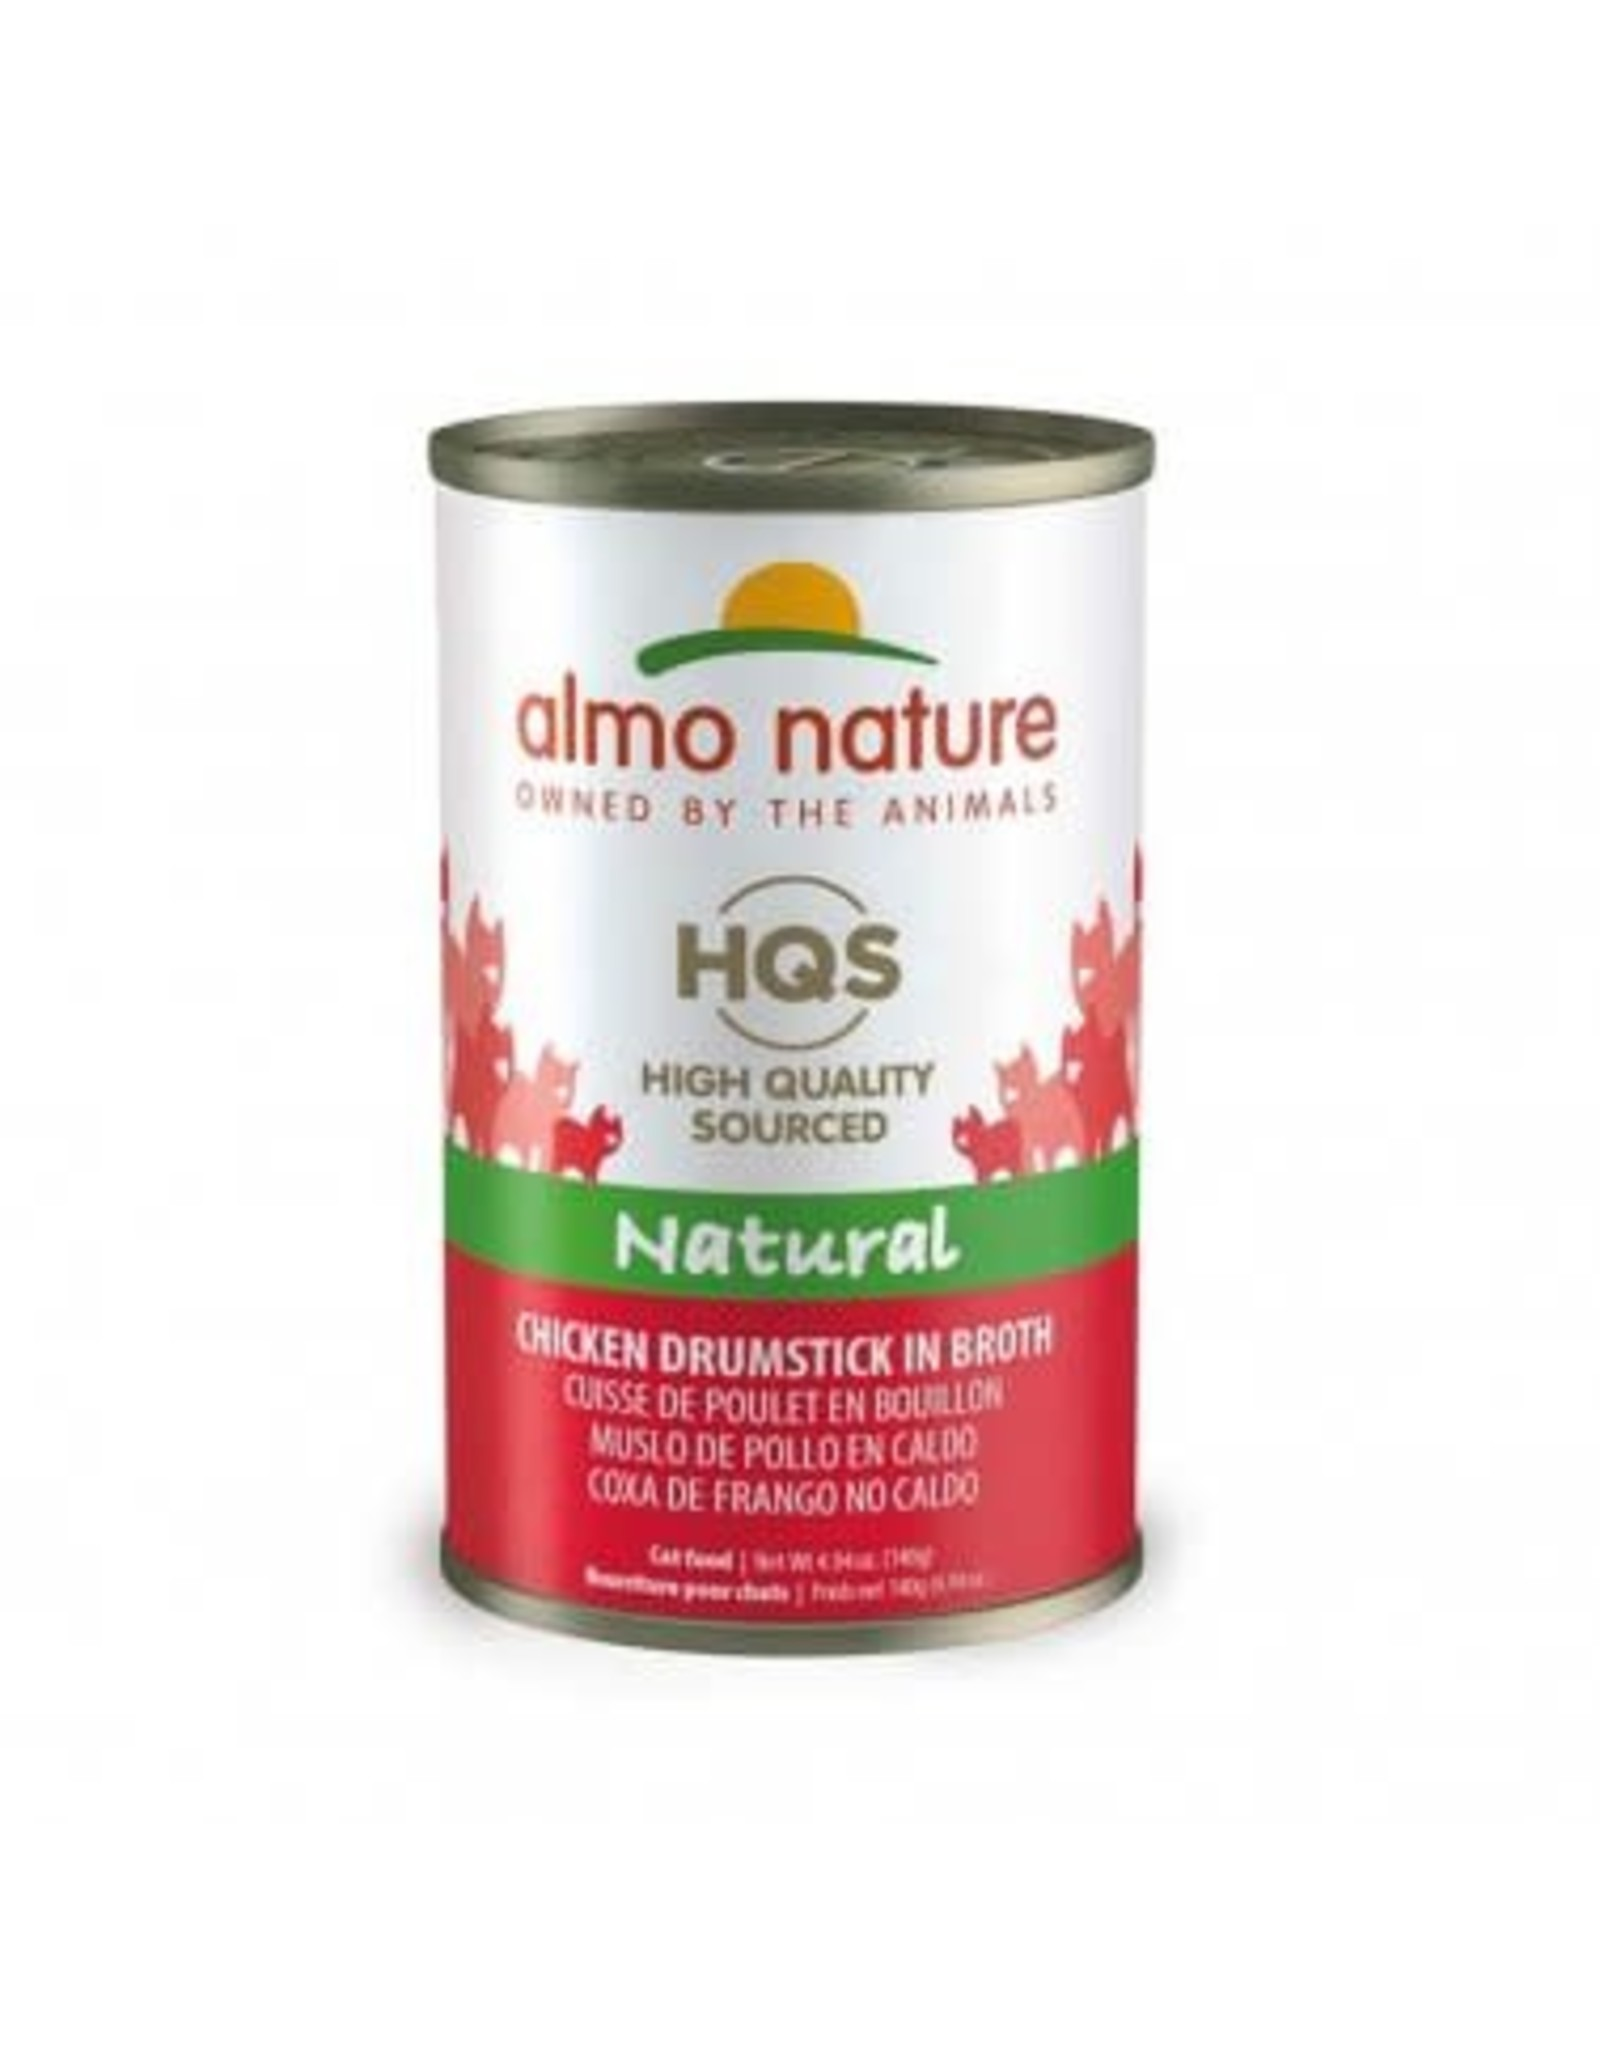 Almo Nature Almo Nature HQS Natural Chicken Drumstick in Broth Cat Food 4.94oz